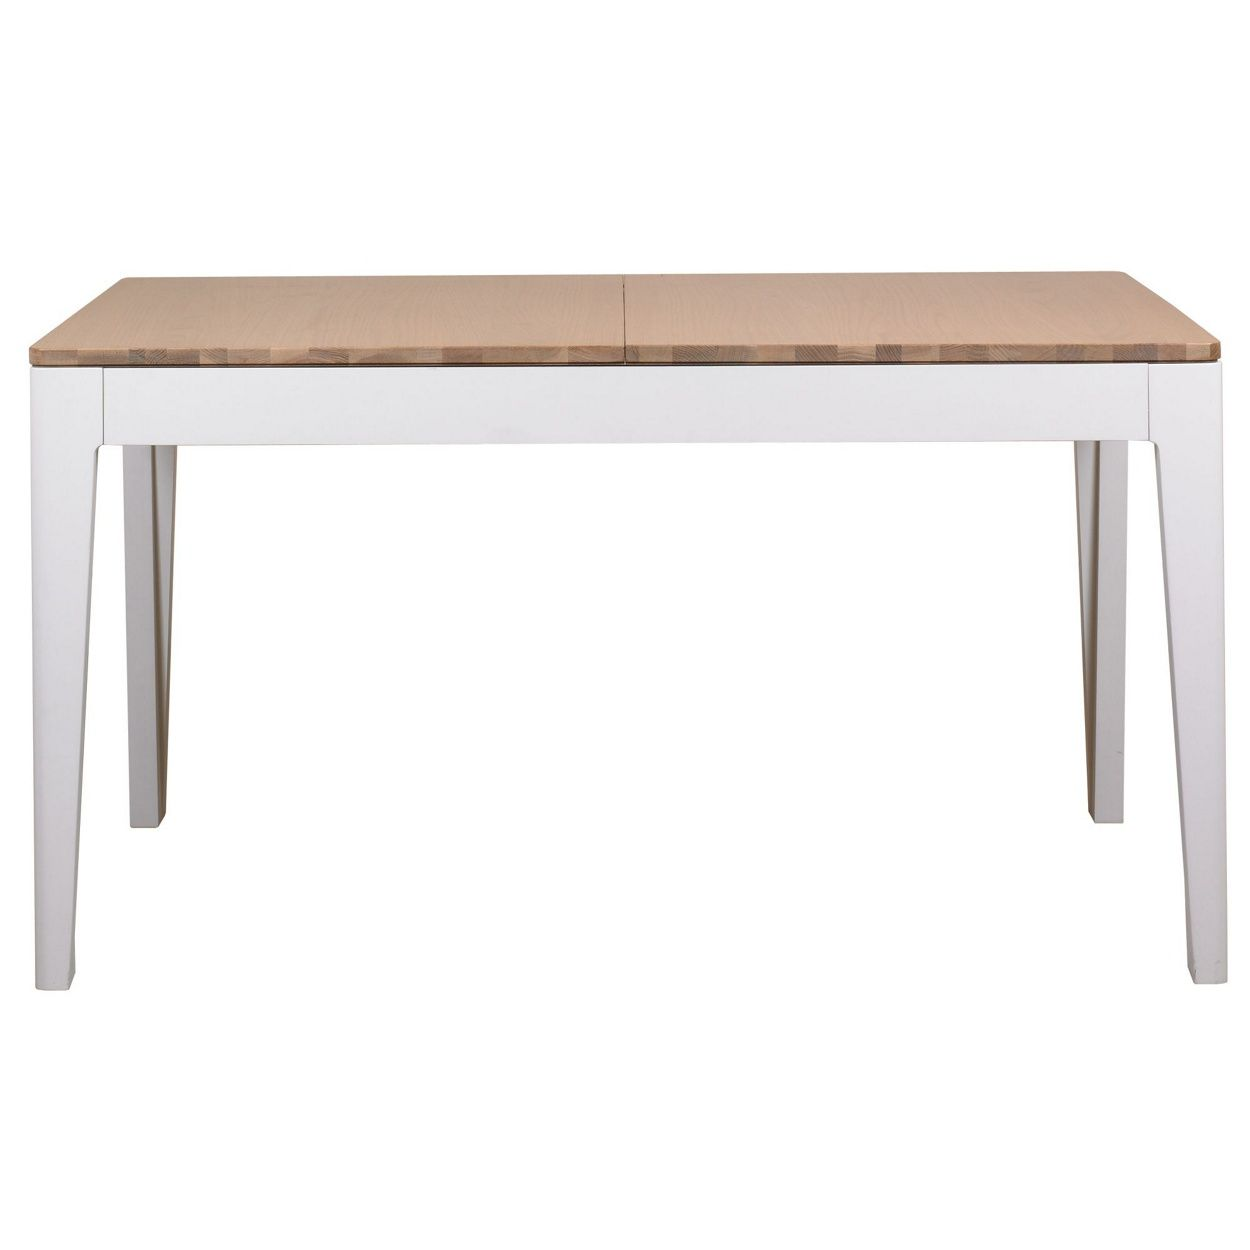 Debenhams white washed oak and painted nord extending table at debenhams white washed oak and painted nord extending table at debenhams geotapseo Images